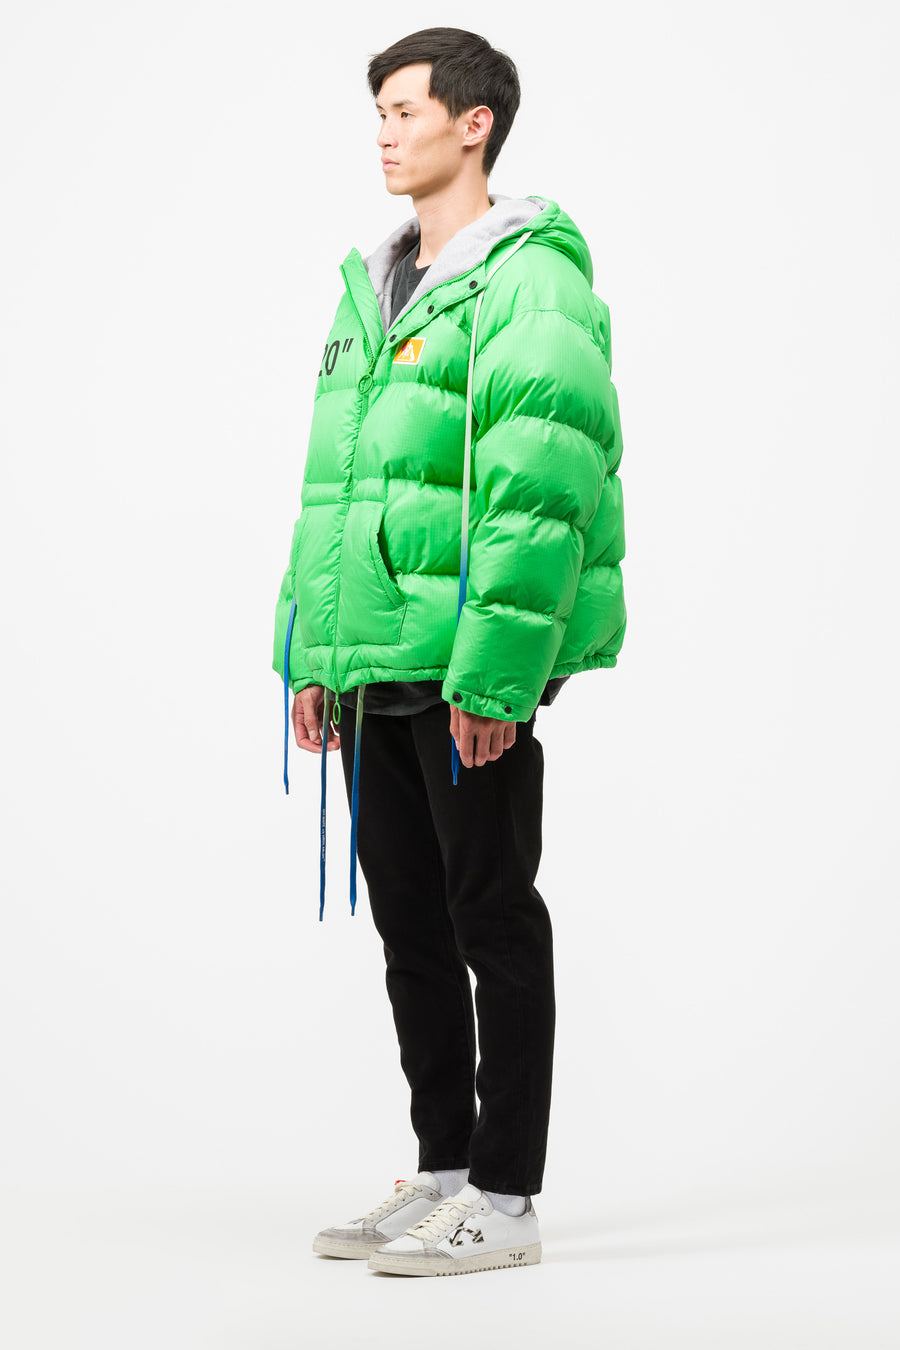 Off-White OW Zipped Puffer in Green/Black - Notre